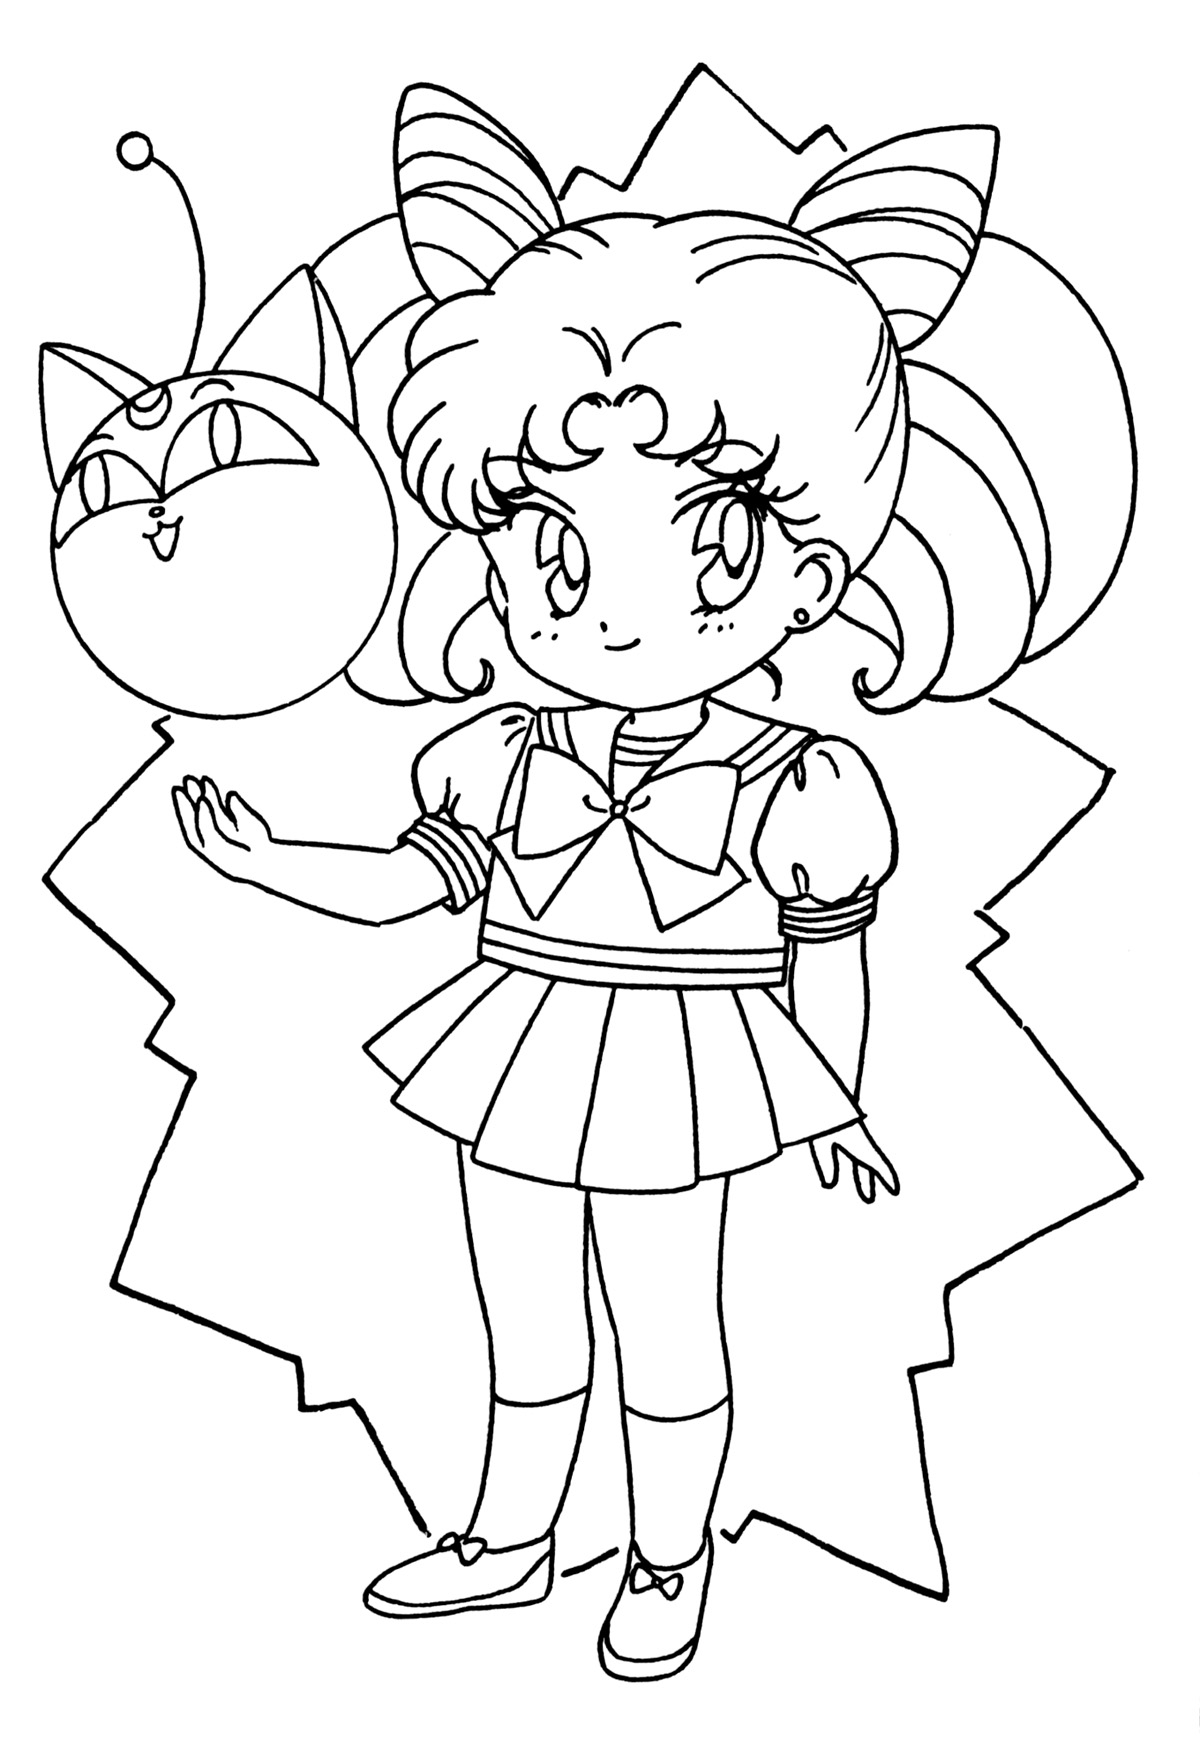 chibi moon coloring pages - photo#25